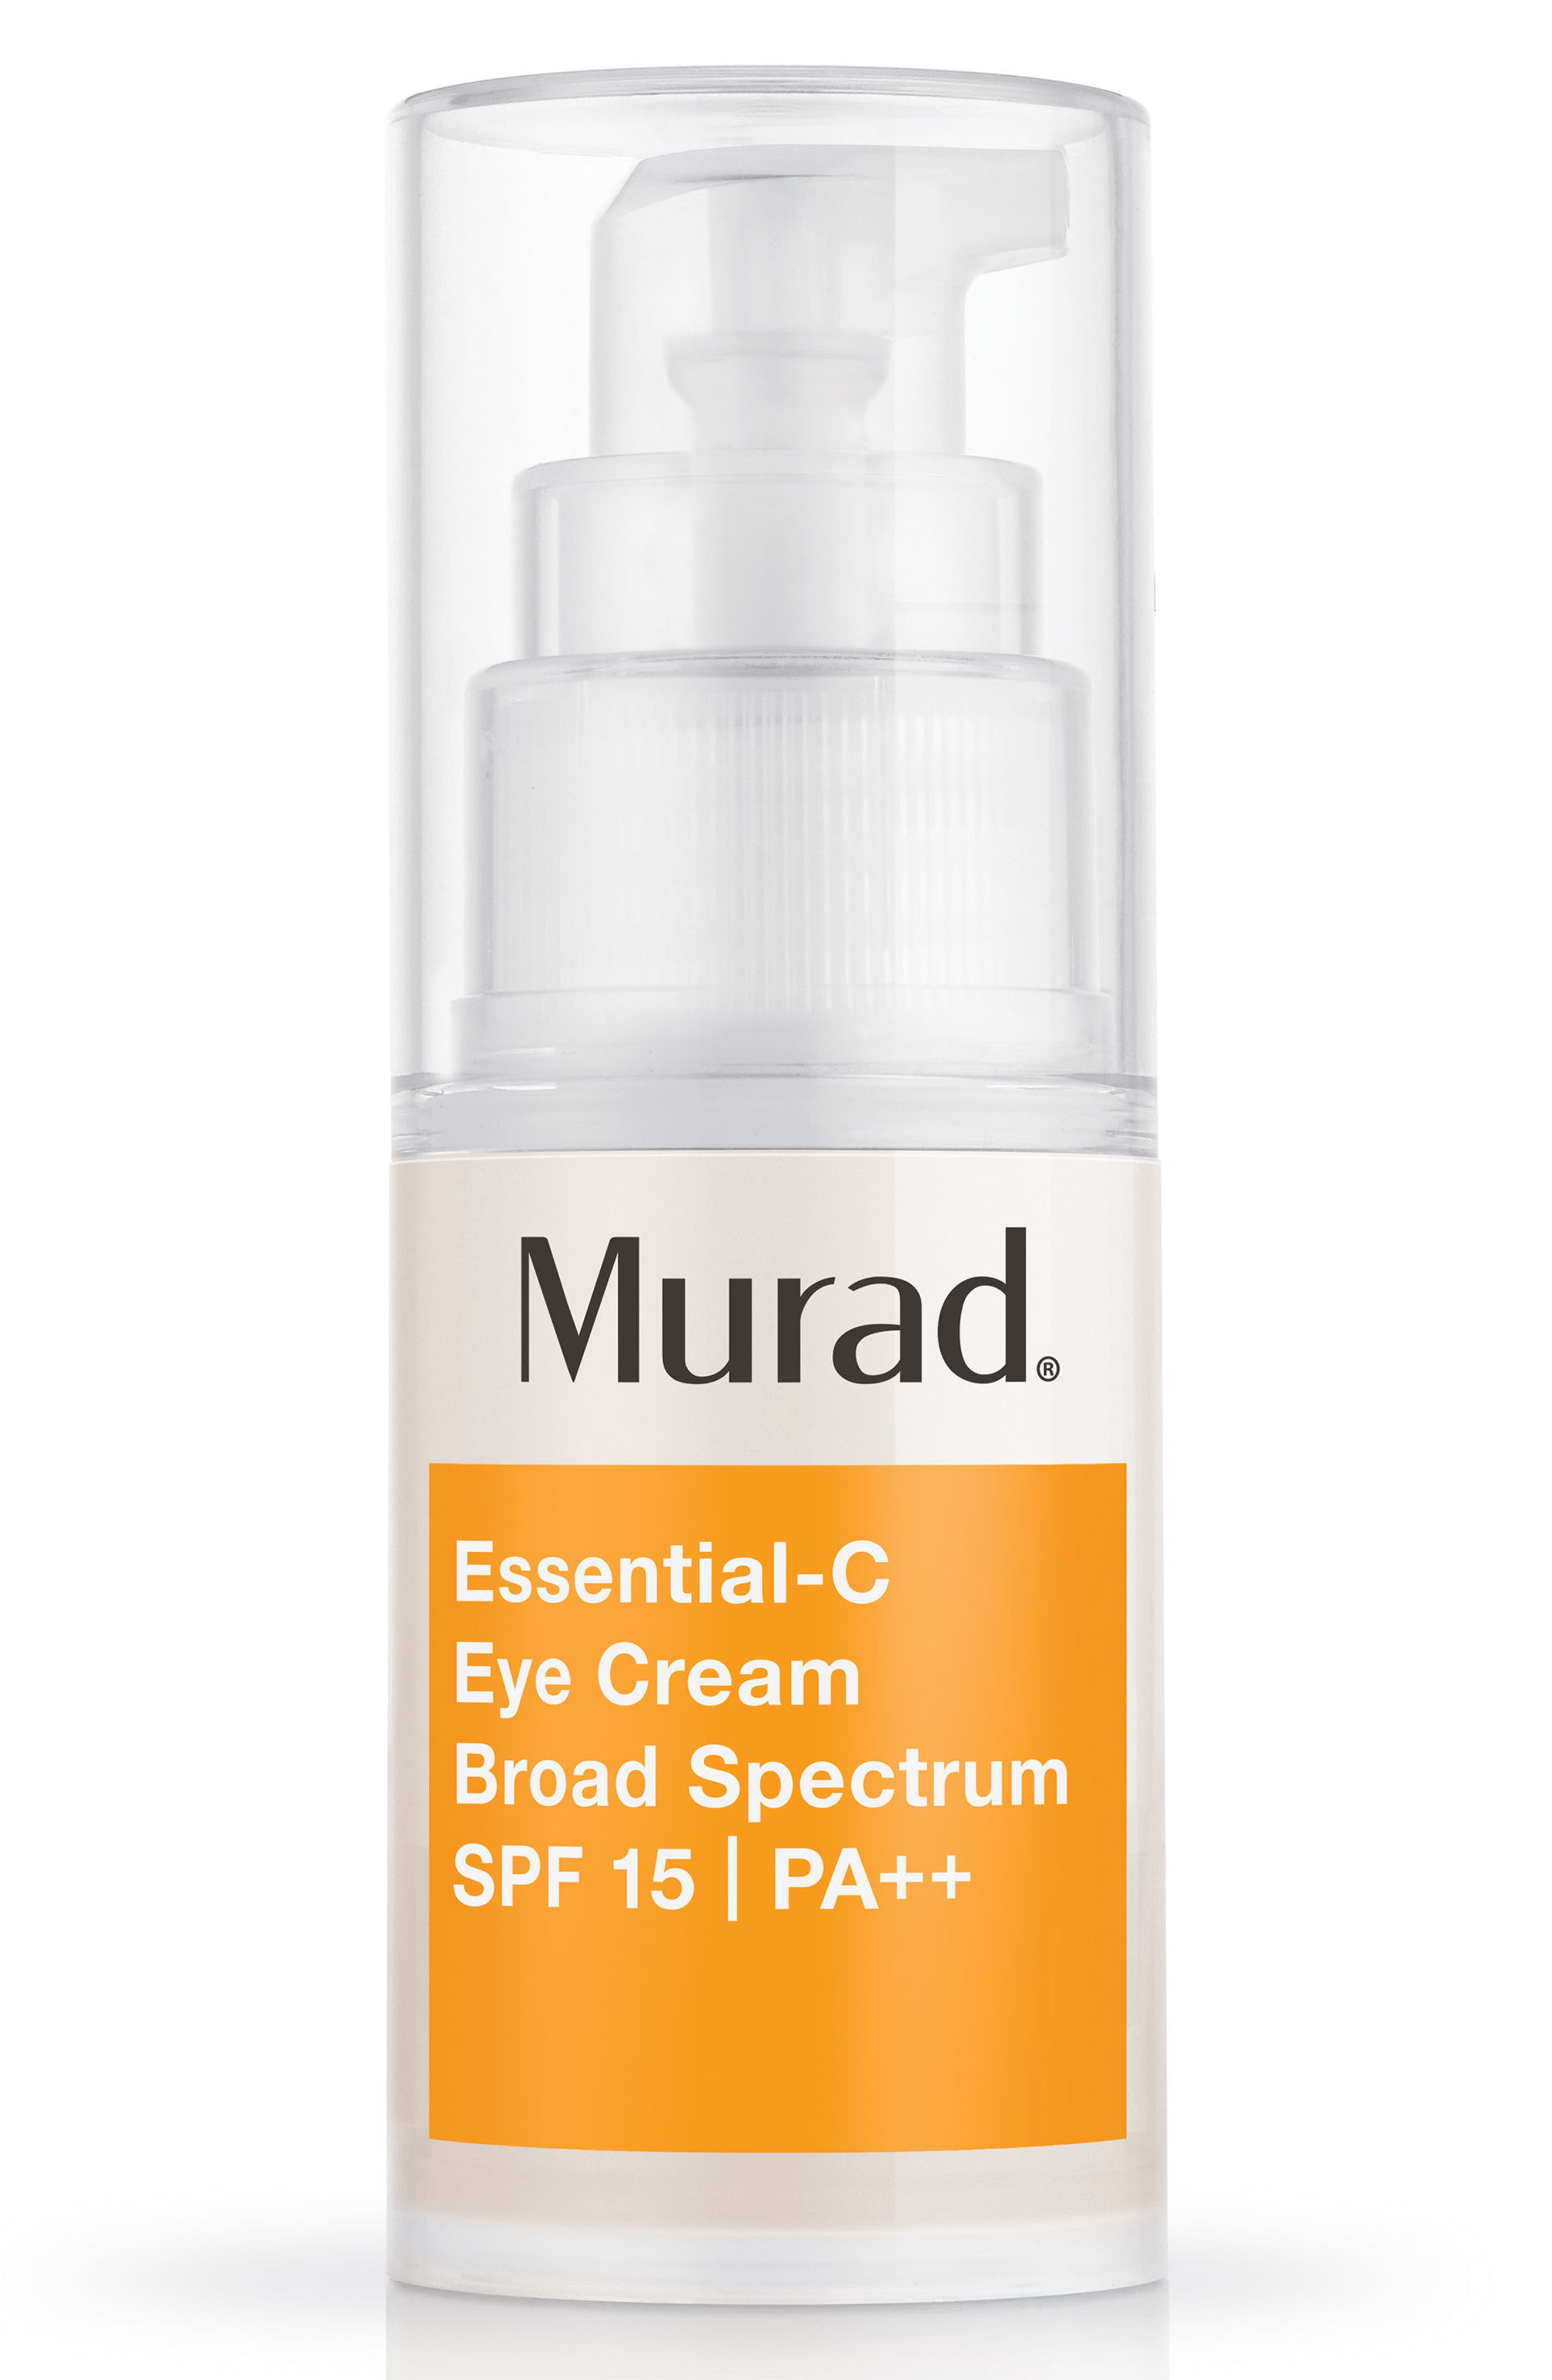 MURAD® Essential-C Eye Cream Broad Spectrum SPF 15